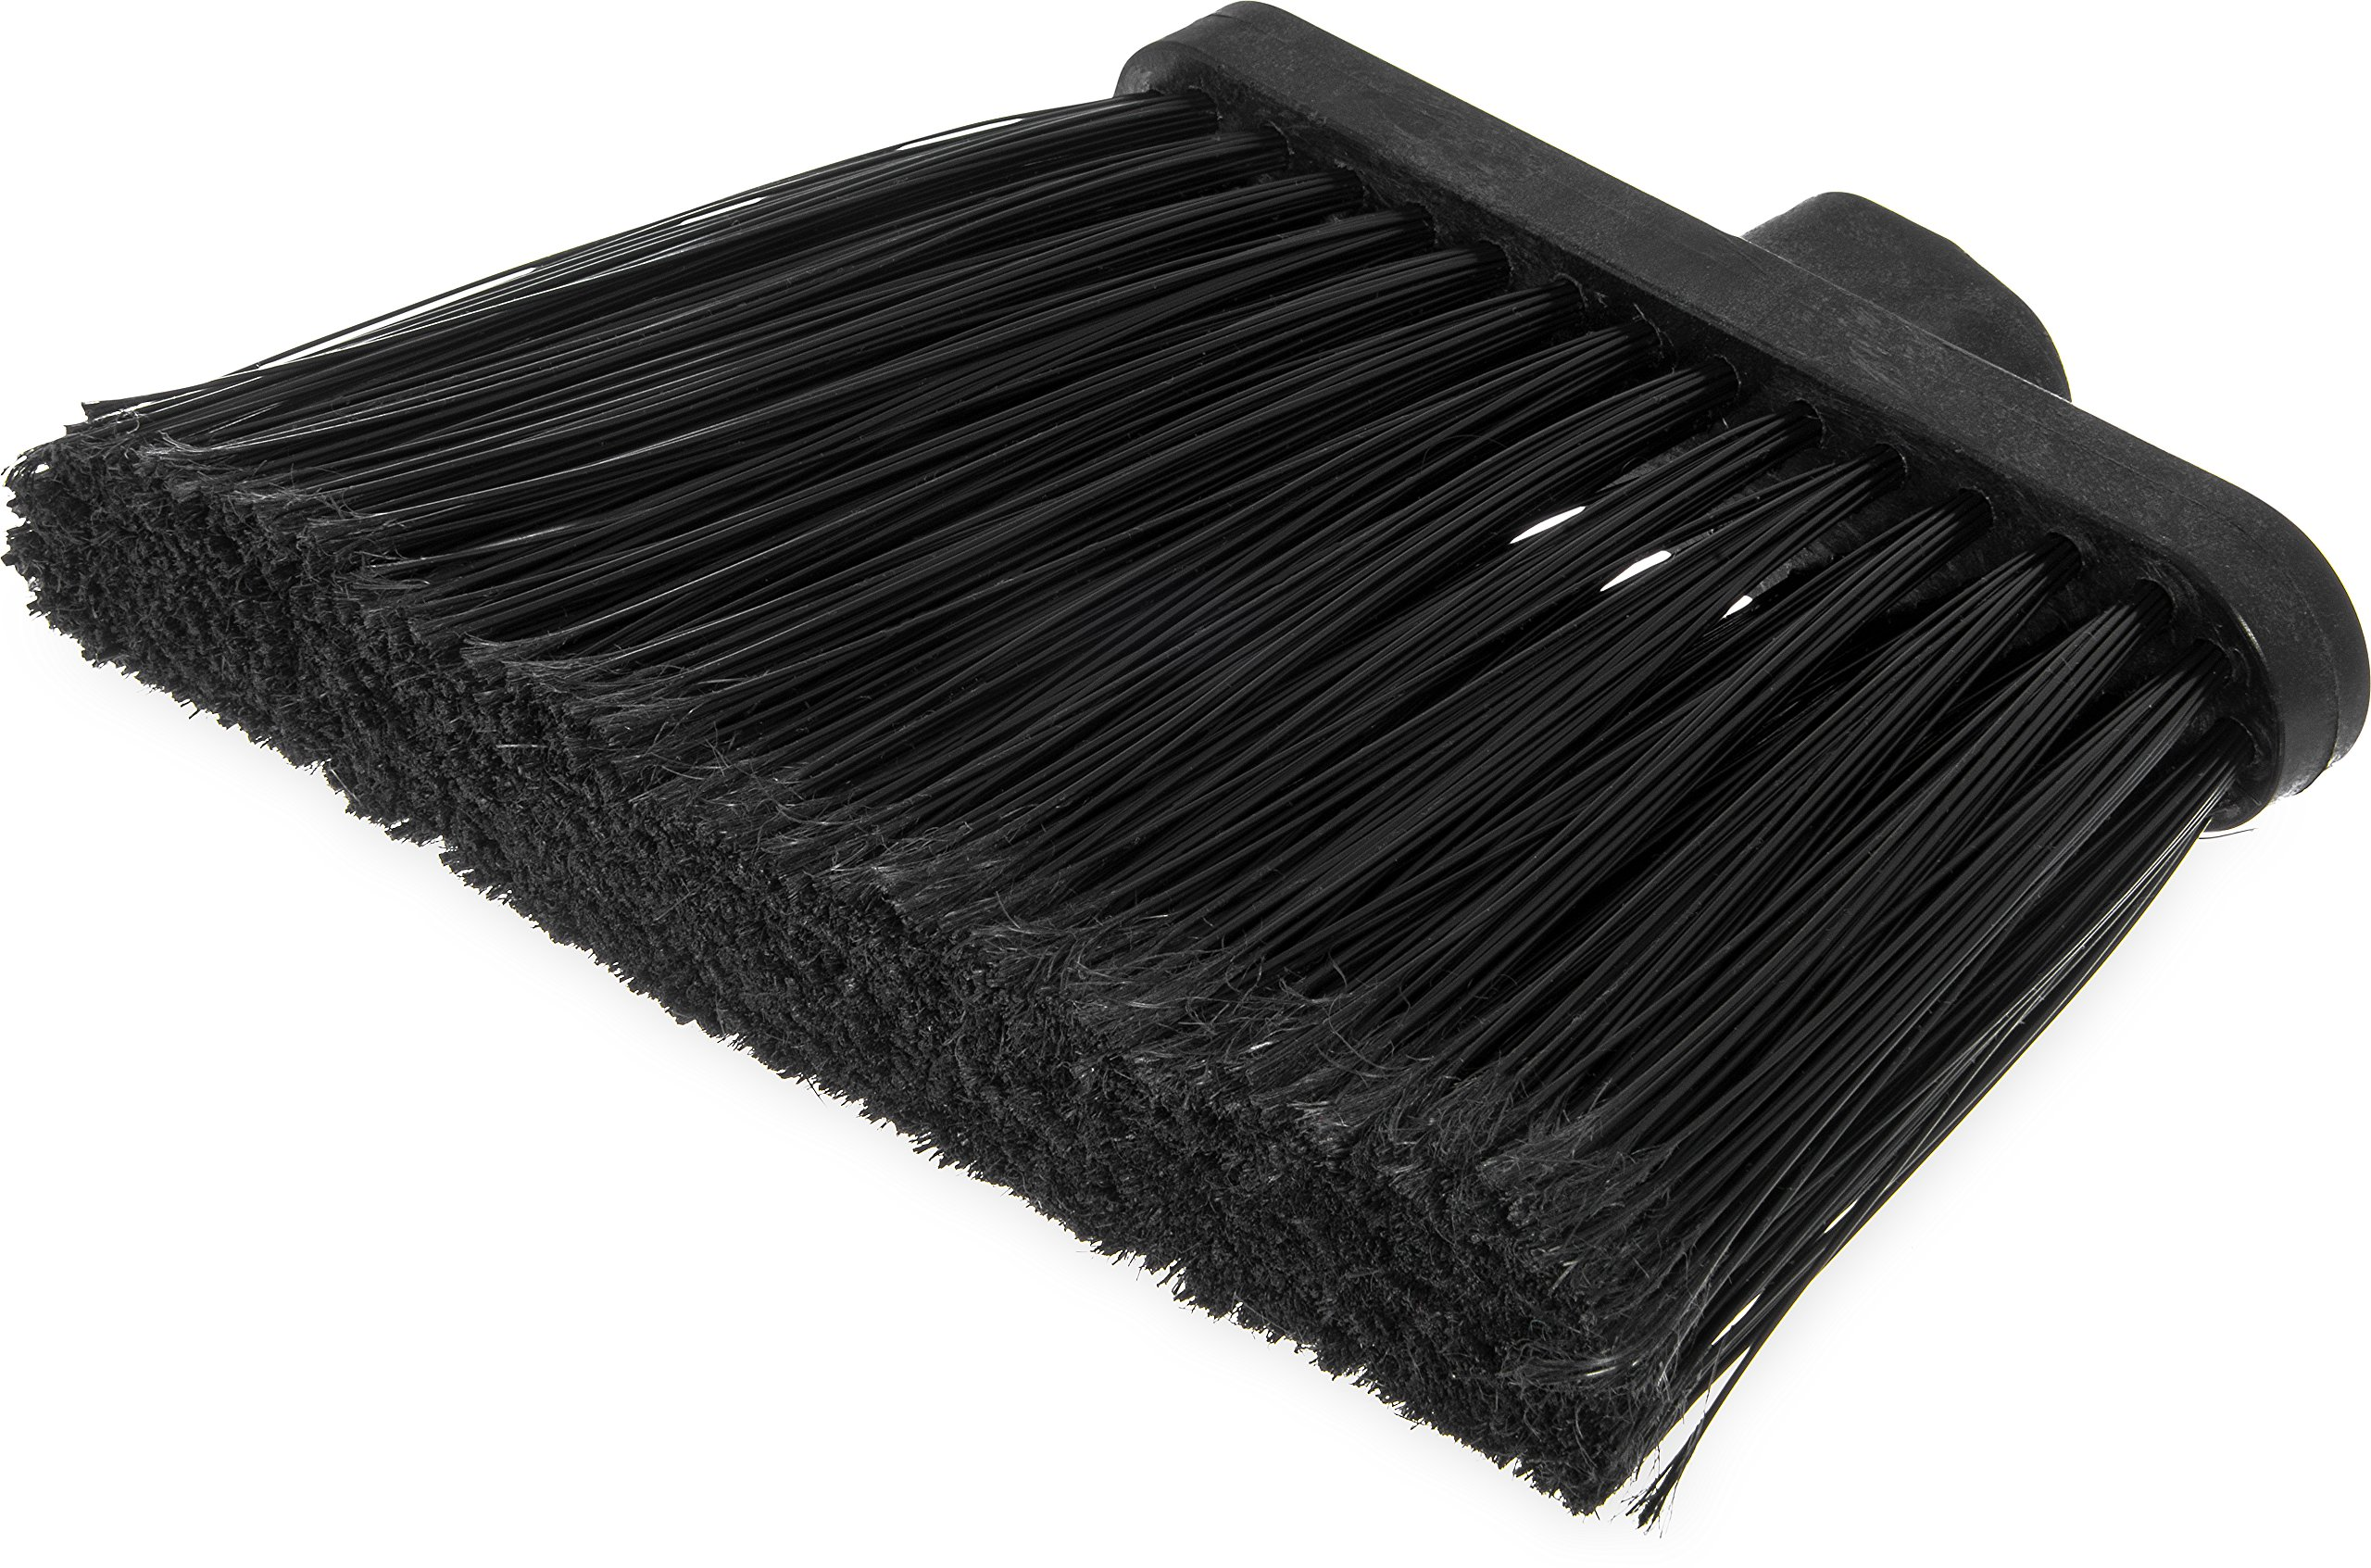 Carlisle 3686703 Duo-Sweep Medium Duty Flagged Angle Broom Head, Polypropylene Bristle, 8'' Overall Length x 12'' Width, Black (Case of 12) by Carlisle (Image #7)